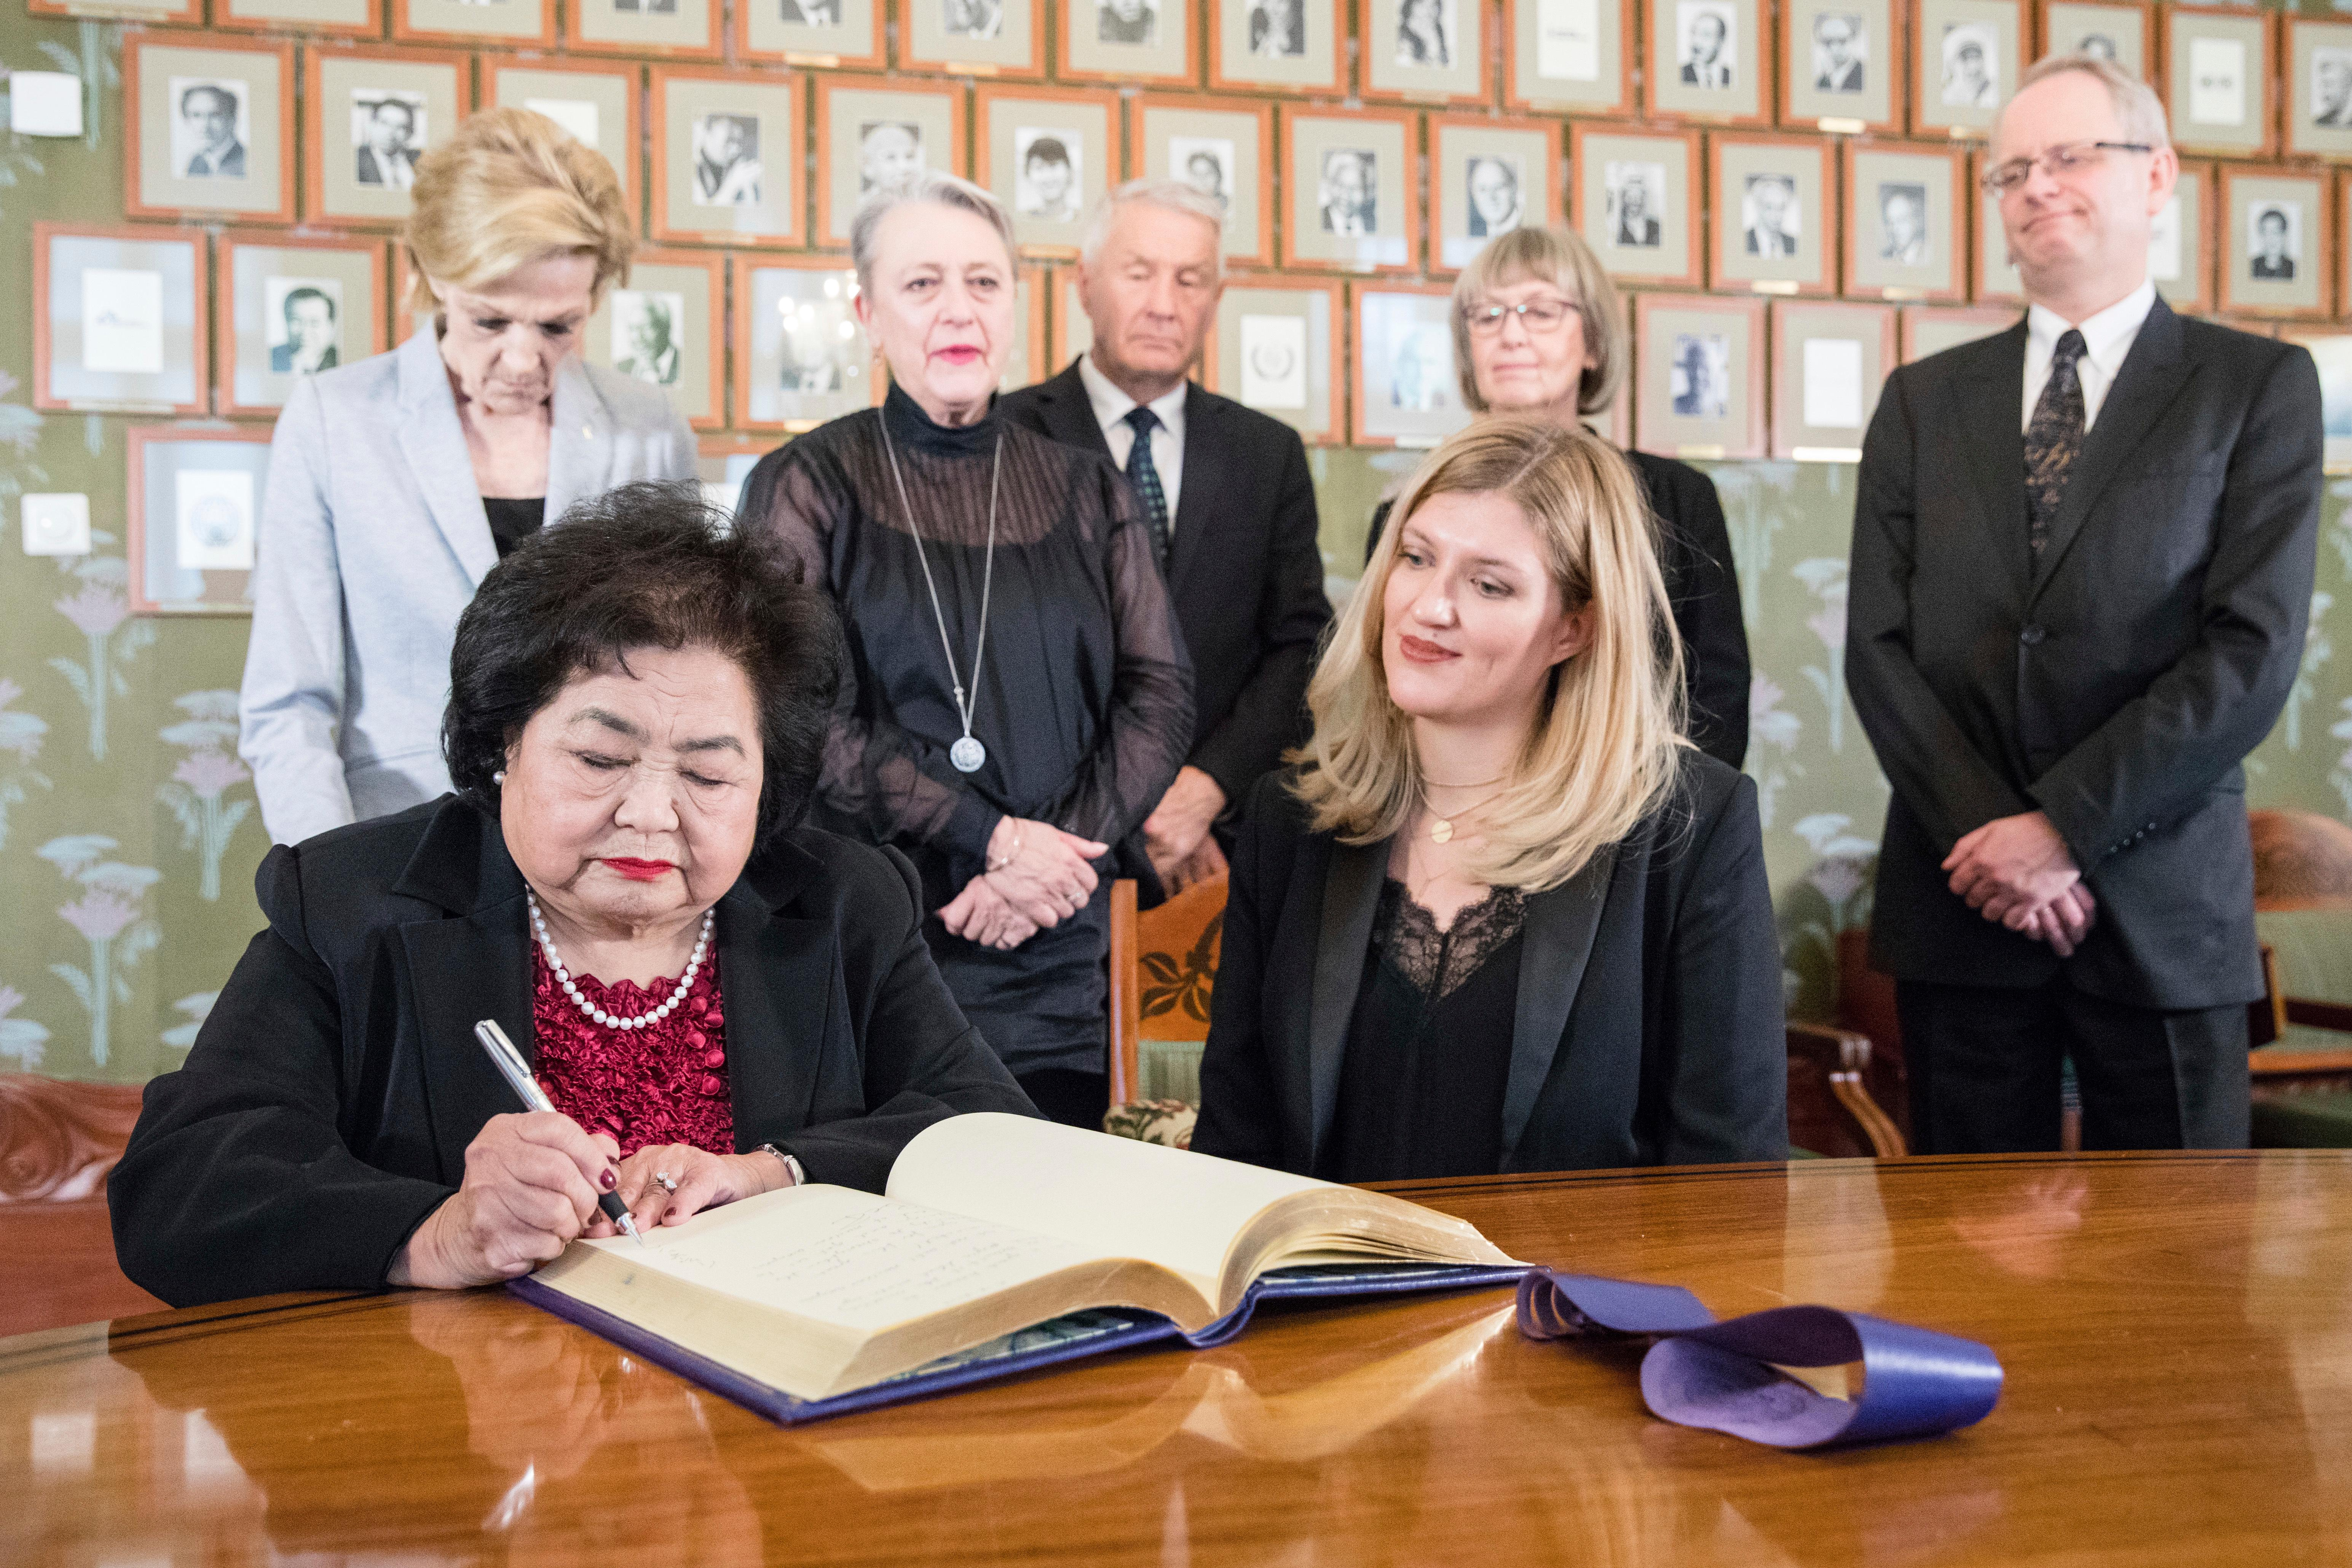 ICAN (International Campaign to Abolish Nuclear Weapons) campaigner and Hiroshima survivor, Setsuko Thurlow signs the Nobel protocol, during a press conference at the Norwegian Nobel Committee, in Oslo, Norway, Saturday, Dec. 9, 2017. As long as atomic bombs exist, a disaster is inevitable, the head of the International Campaign to Abolish Nuclear Weapons, the winner of this year's Nobel Peace Prize, said Saturday. (Audun Braastad/NTB scanpix via AP)